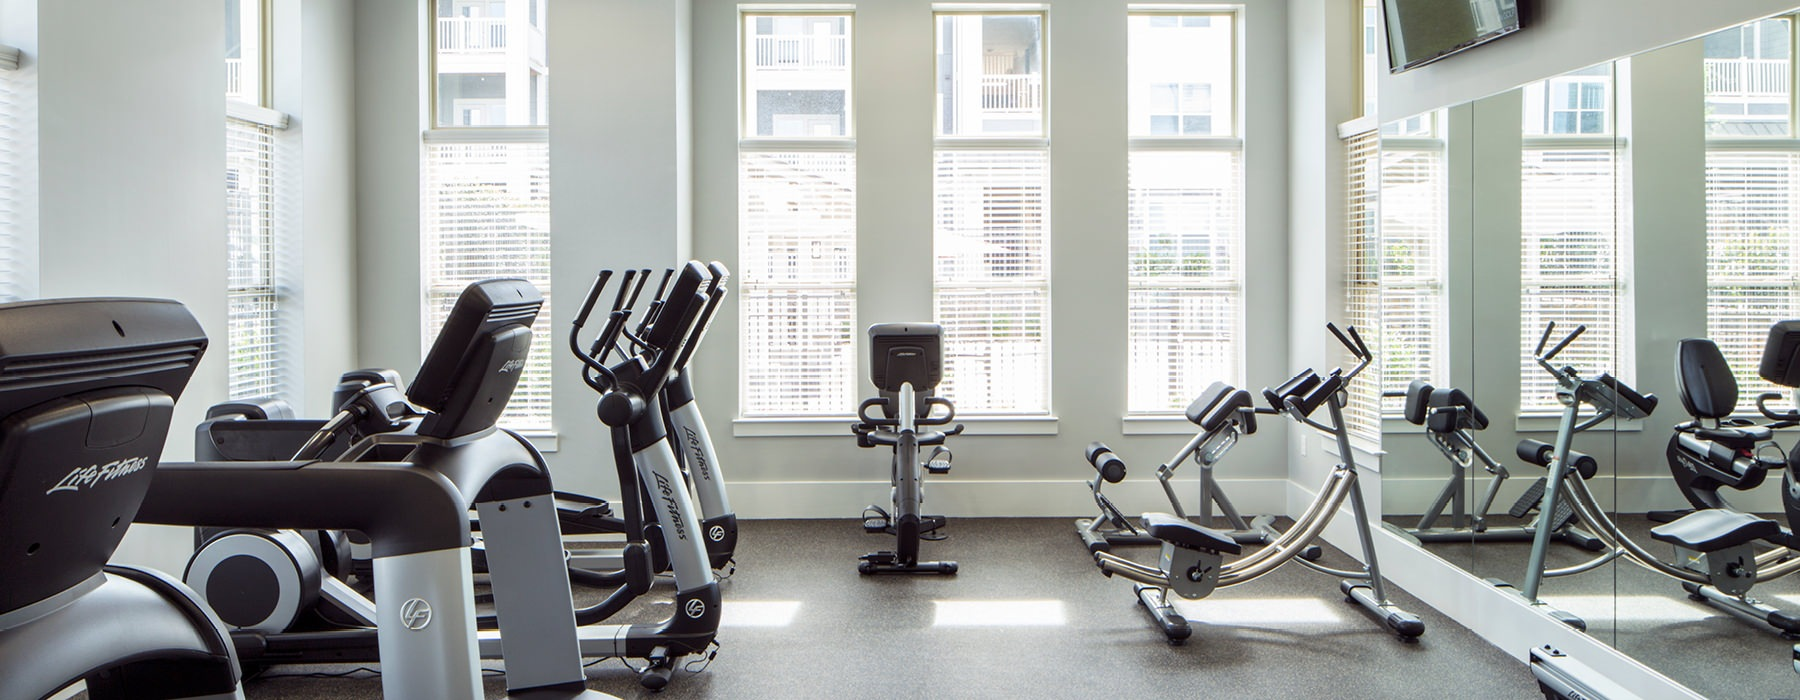 Fitness Center has plenty of windows for natural light